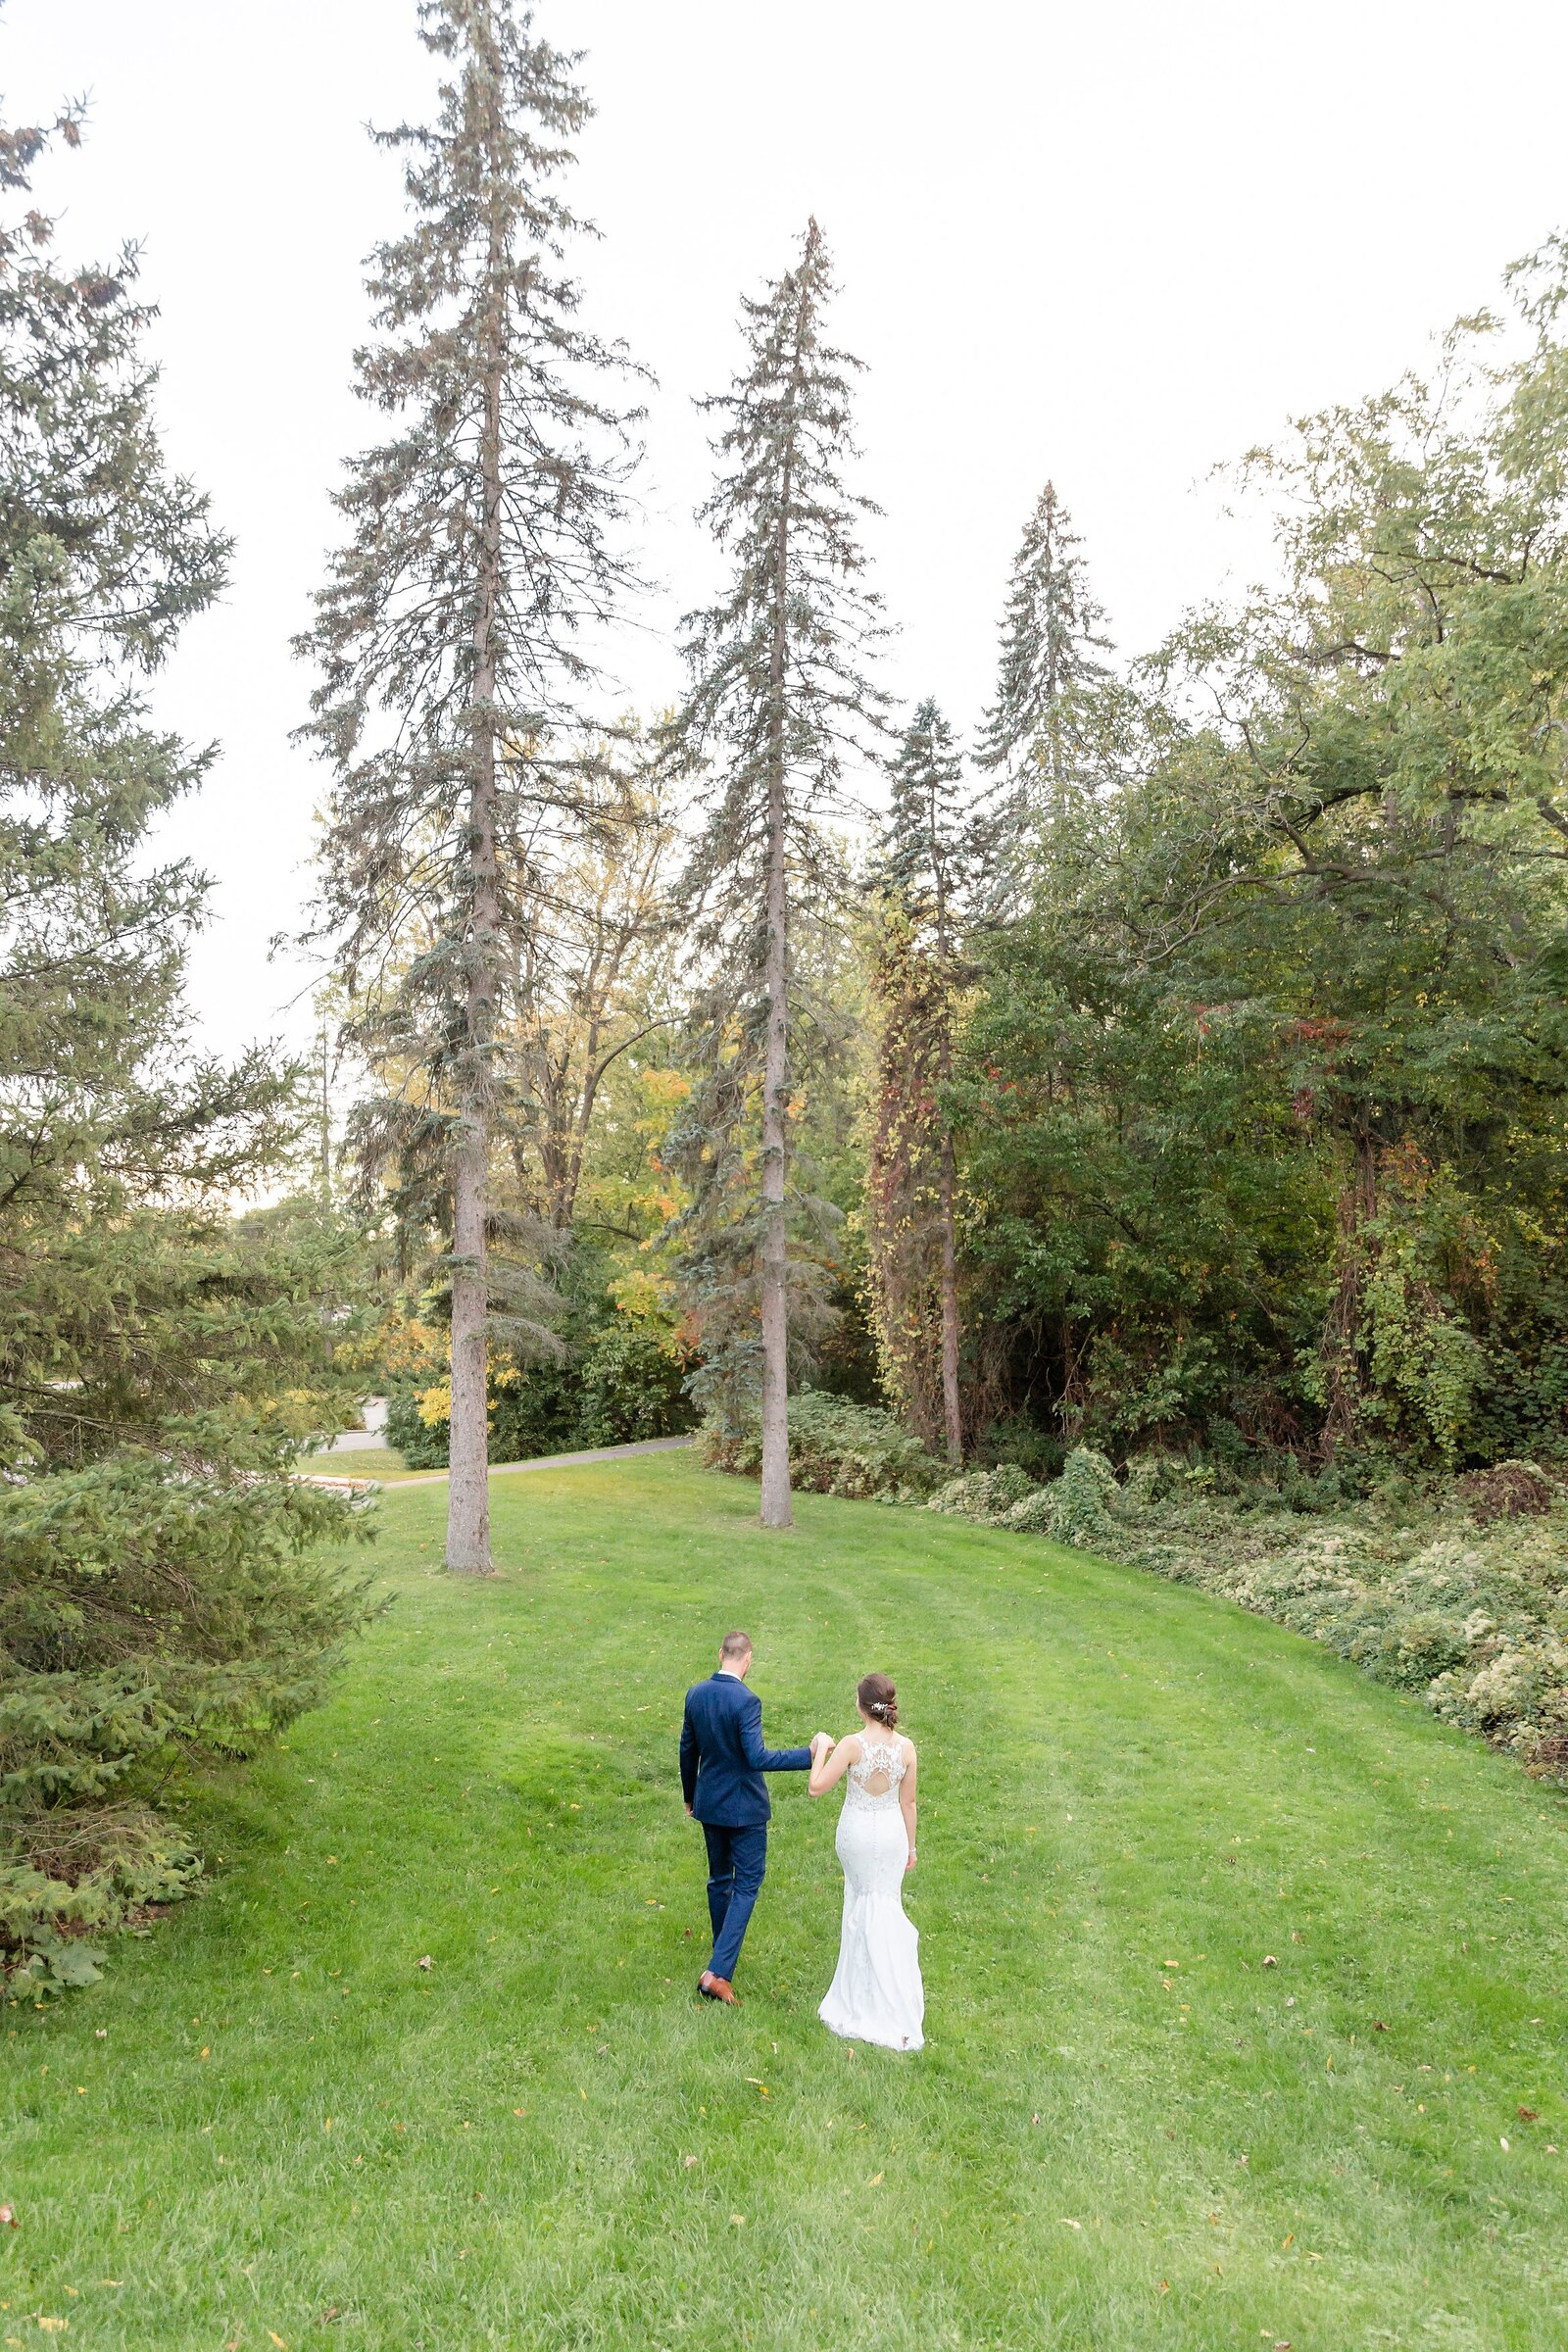 Couple-walks-away-down-a-hill-towards-beautiful-towering-trees-at-windermere-manor-in-london-ontario